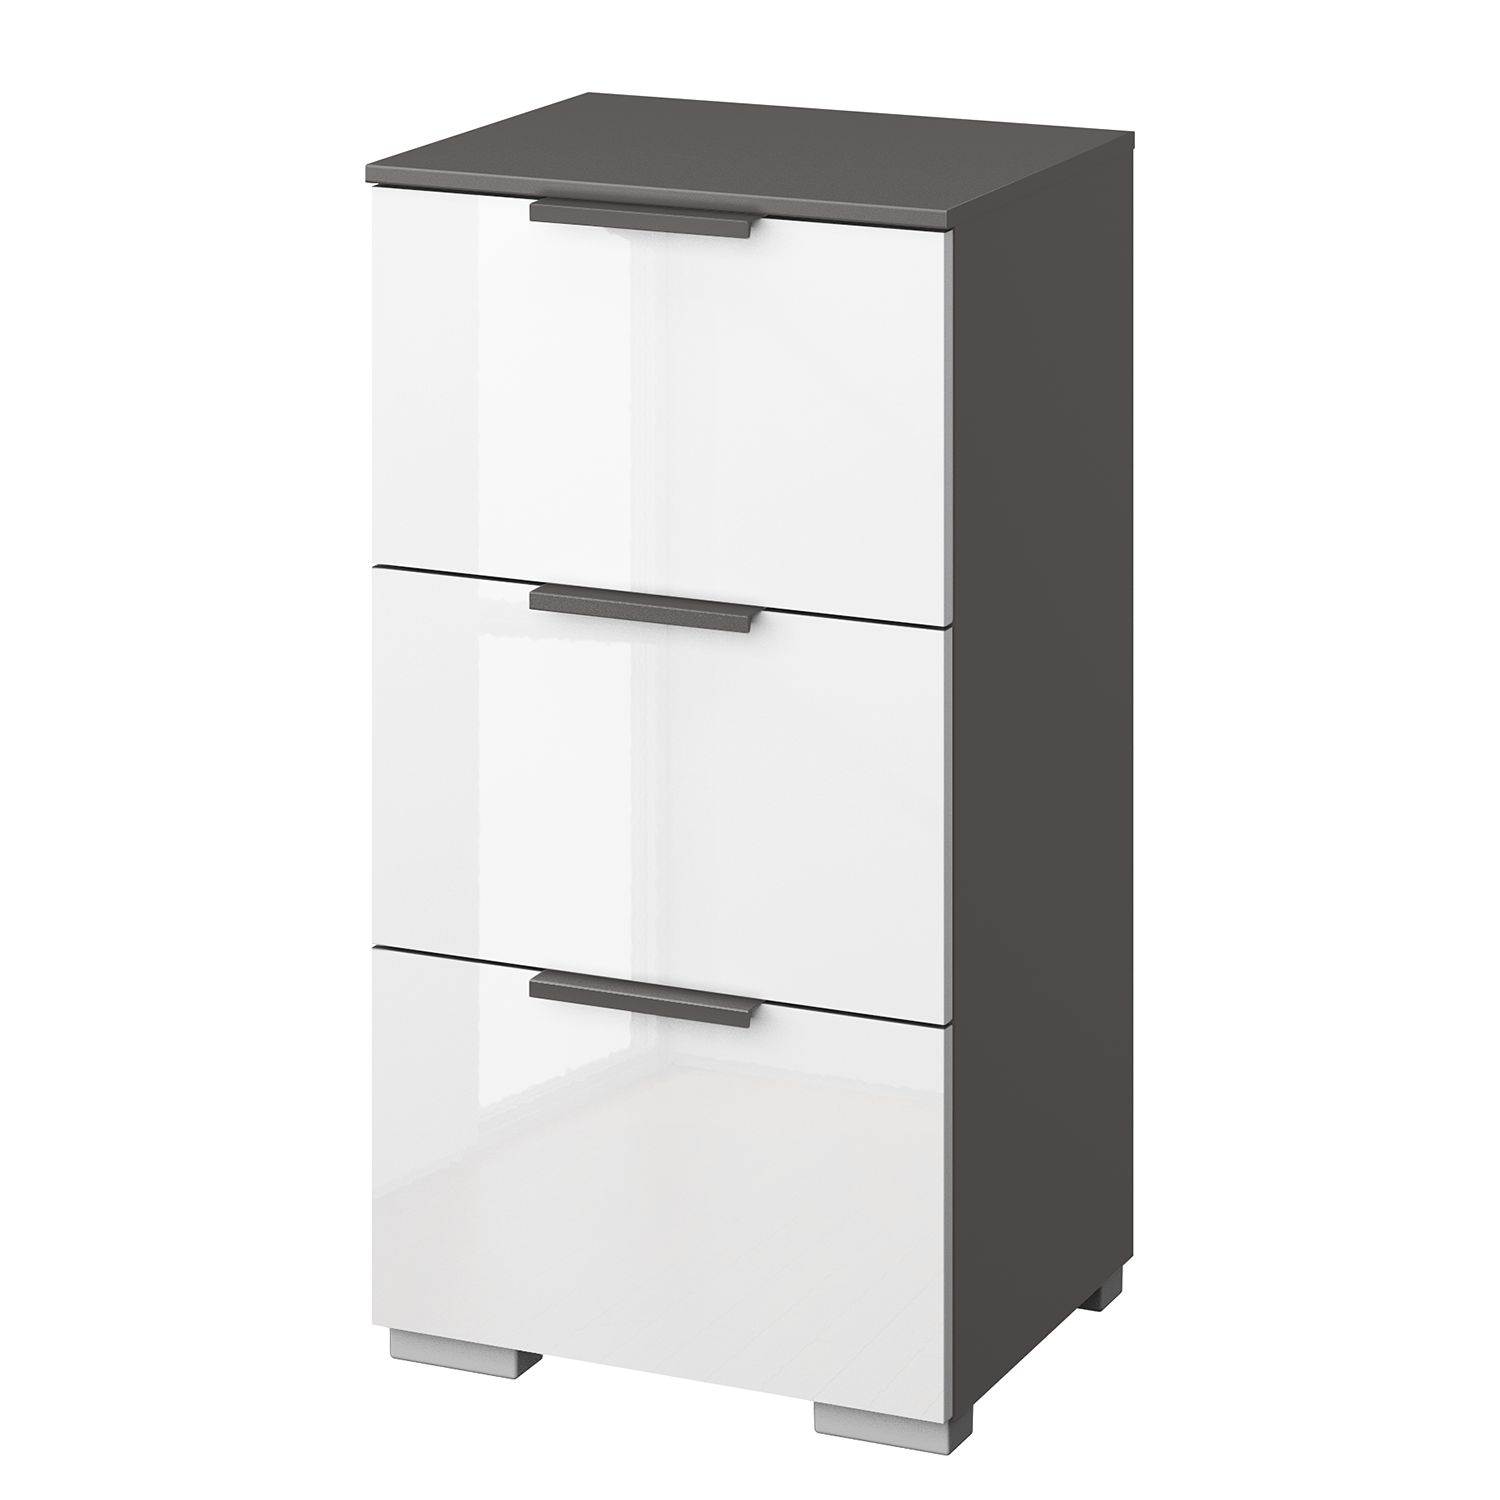 Commode SKØP I - Graphite / Blanc brillant - Graphite, SKØP